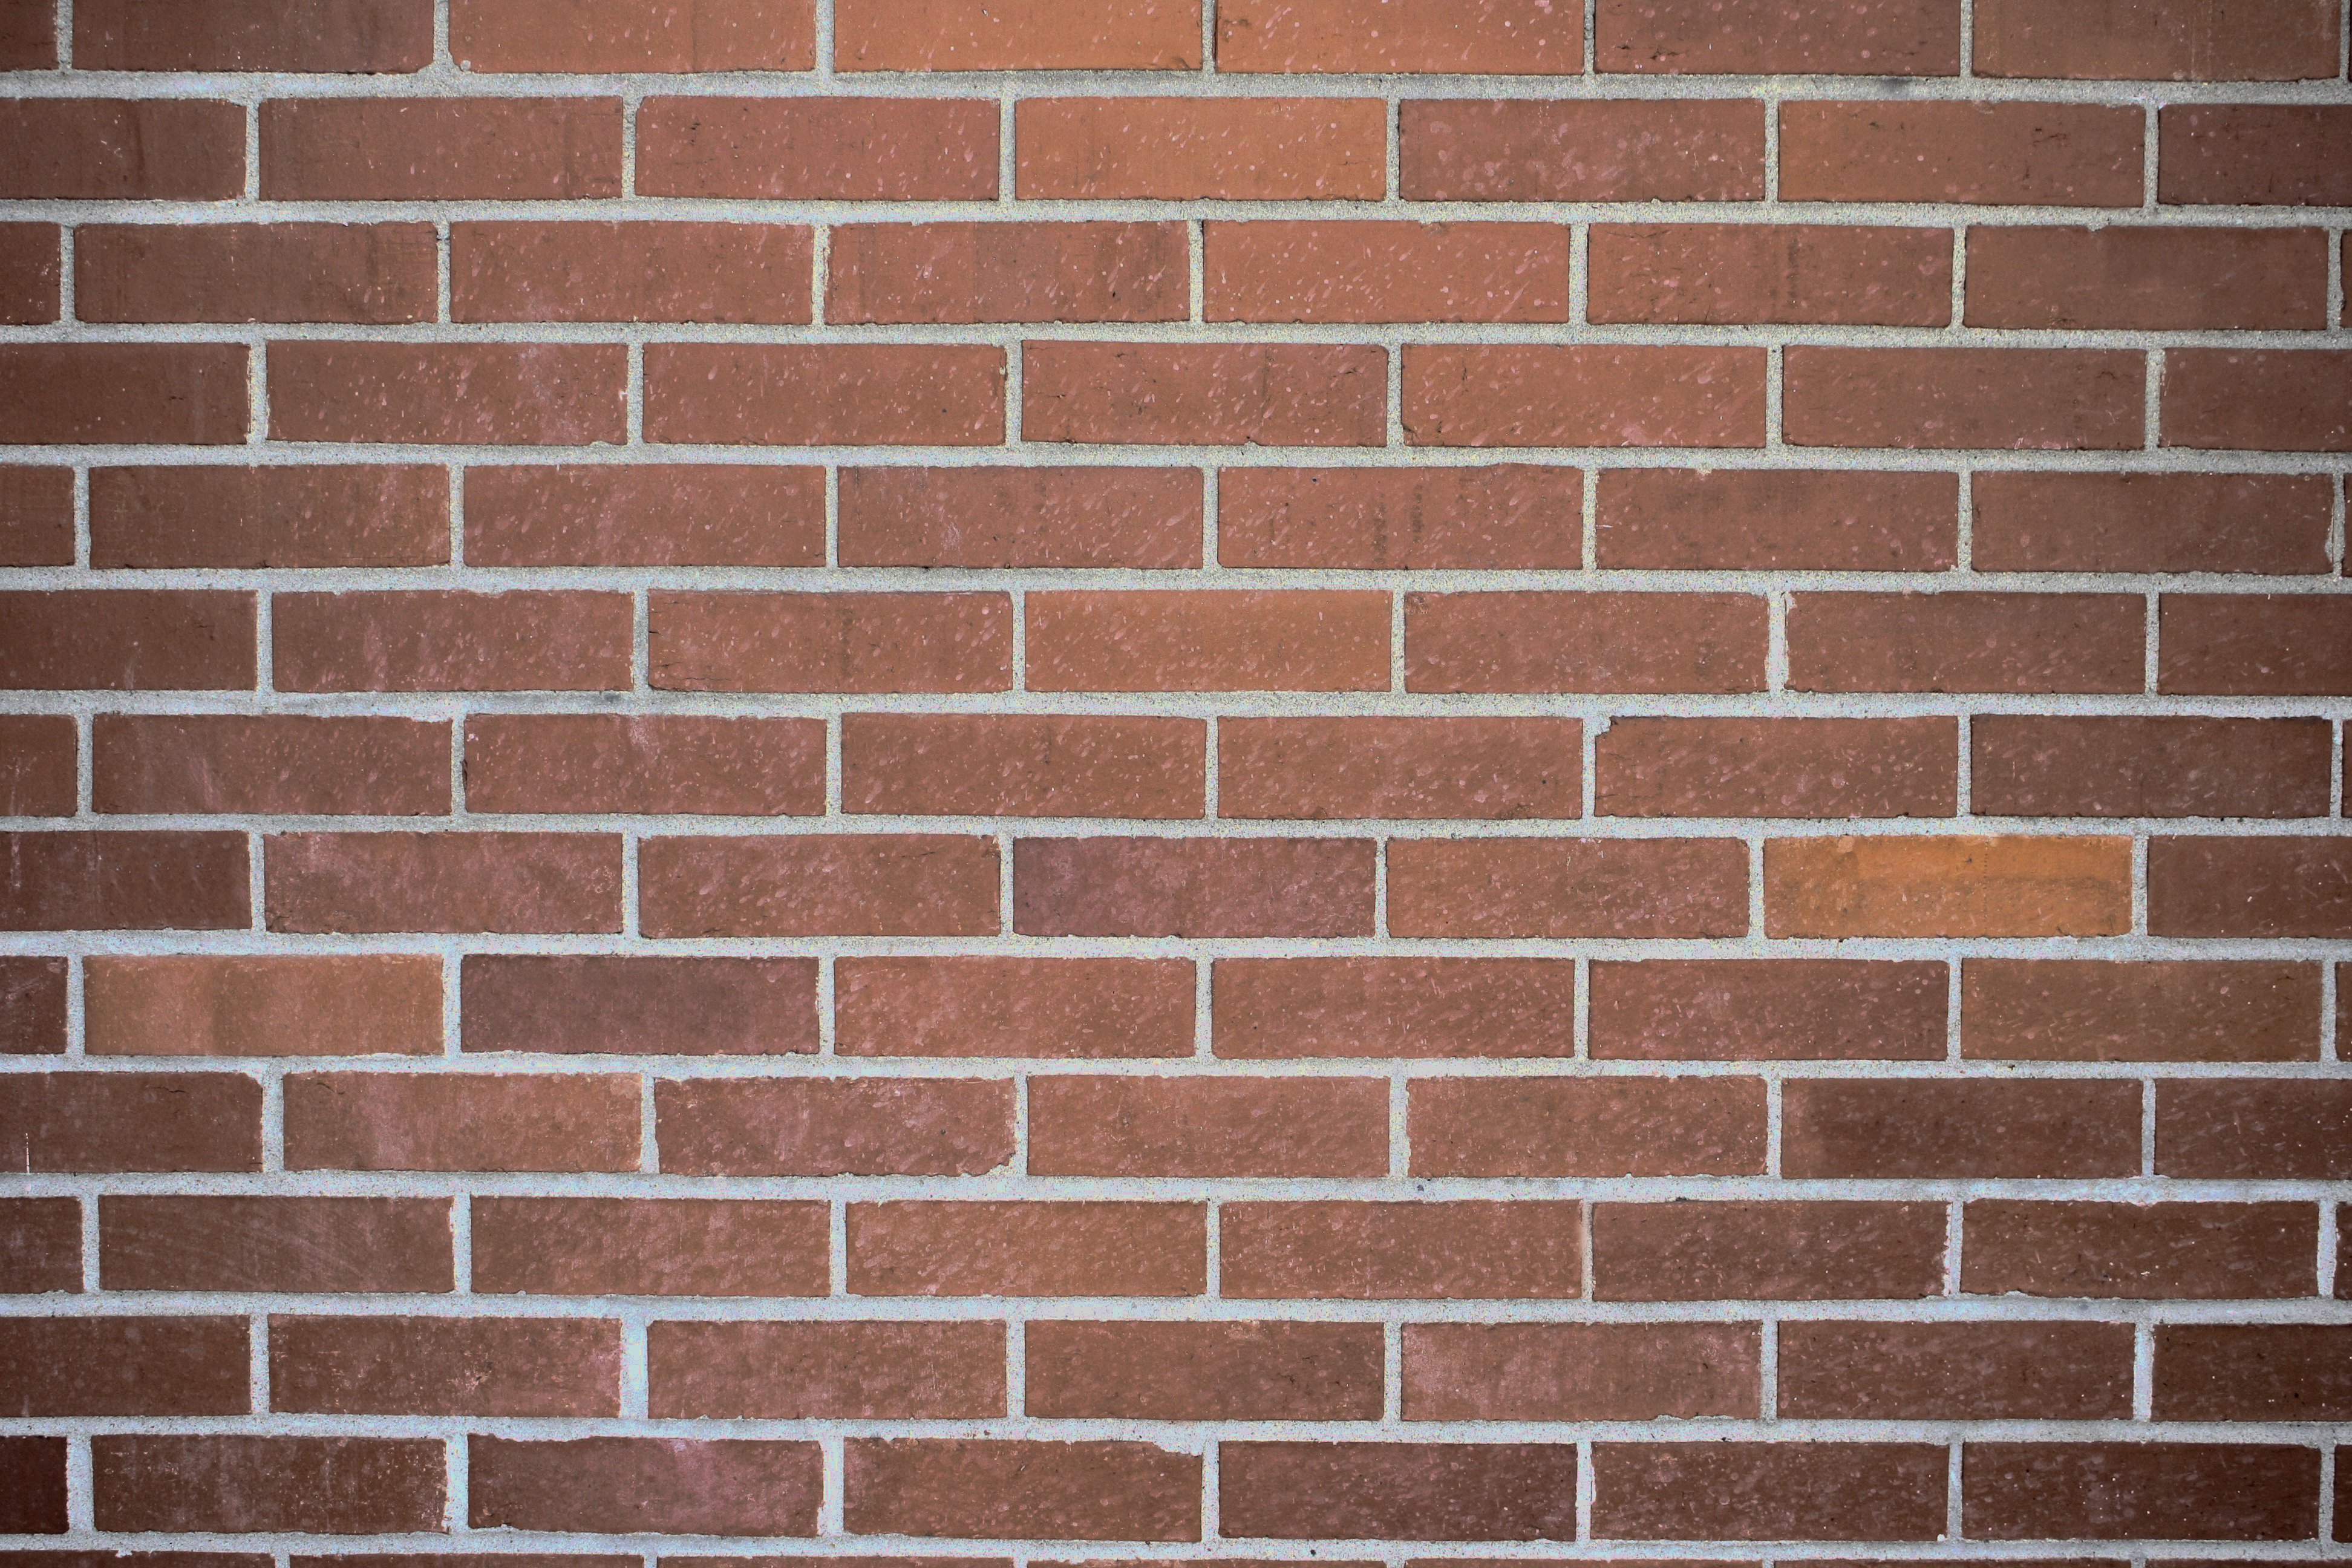 Brown Brick Wall Texture Picture | Free Photograph | Photos Public ...